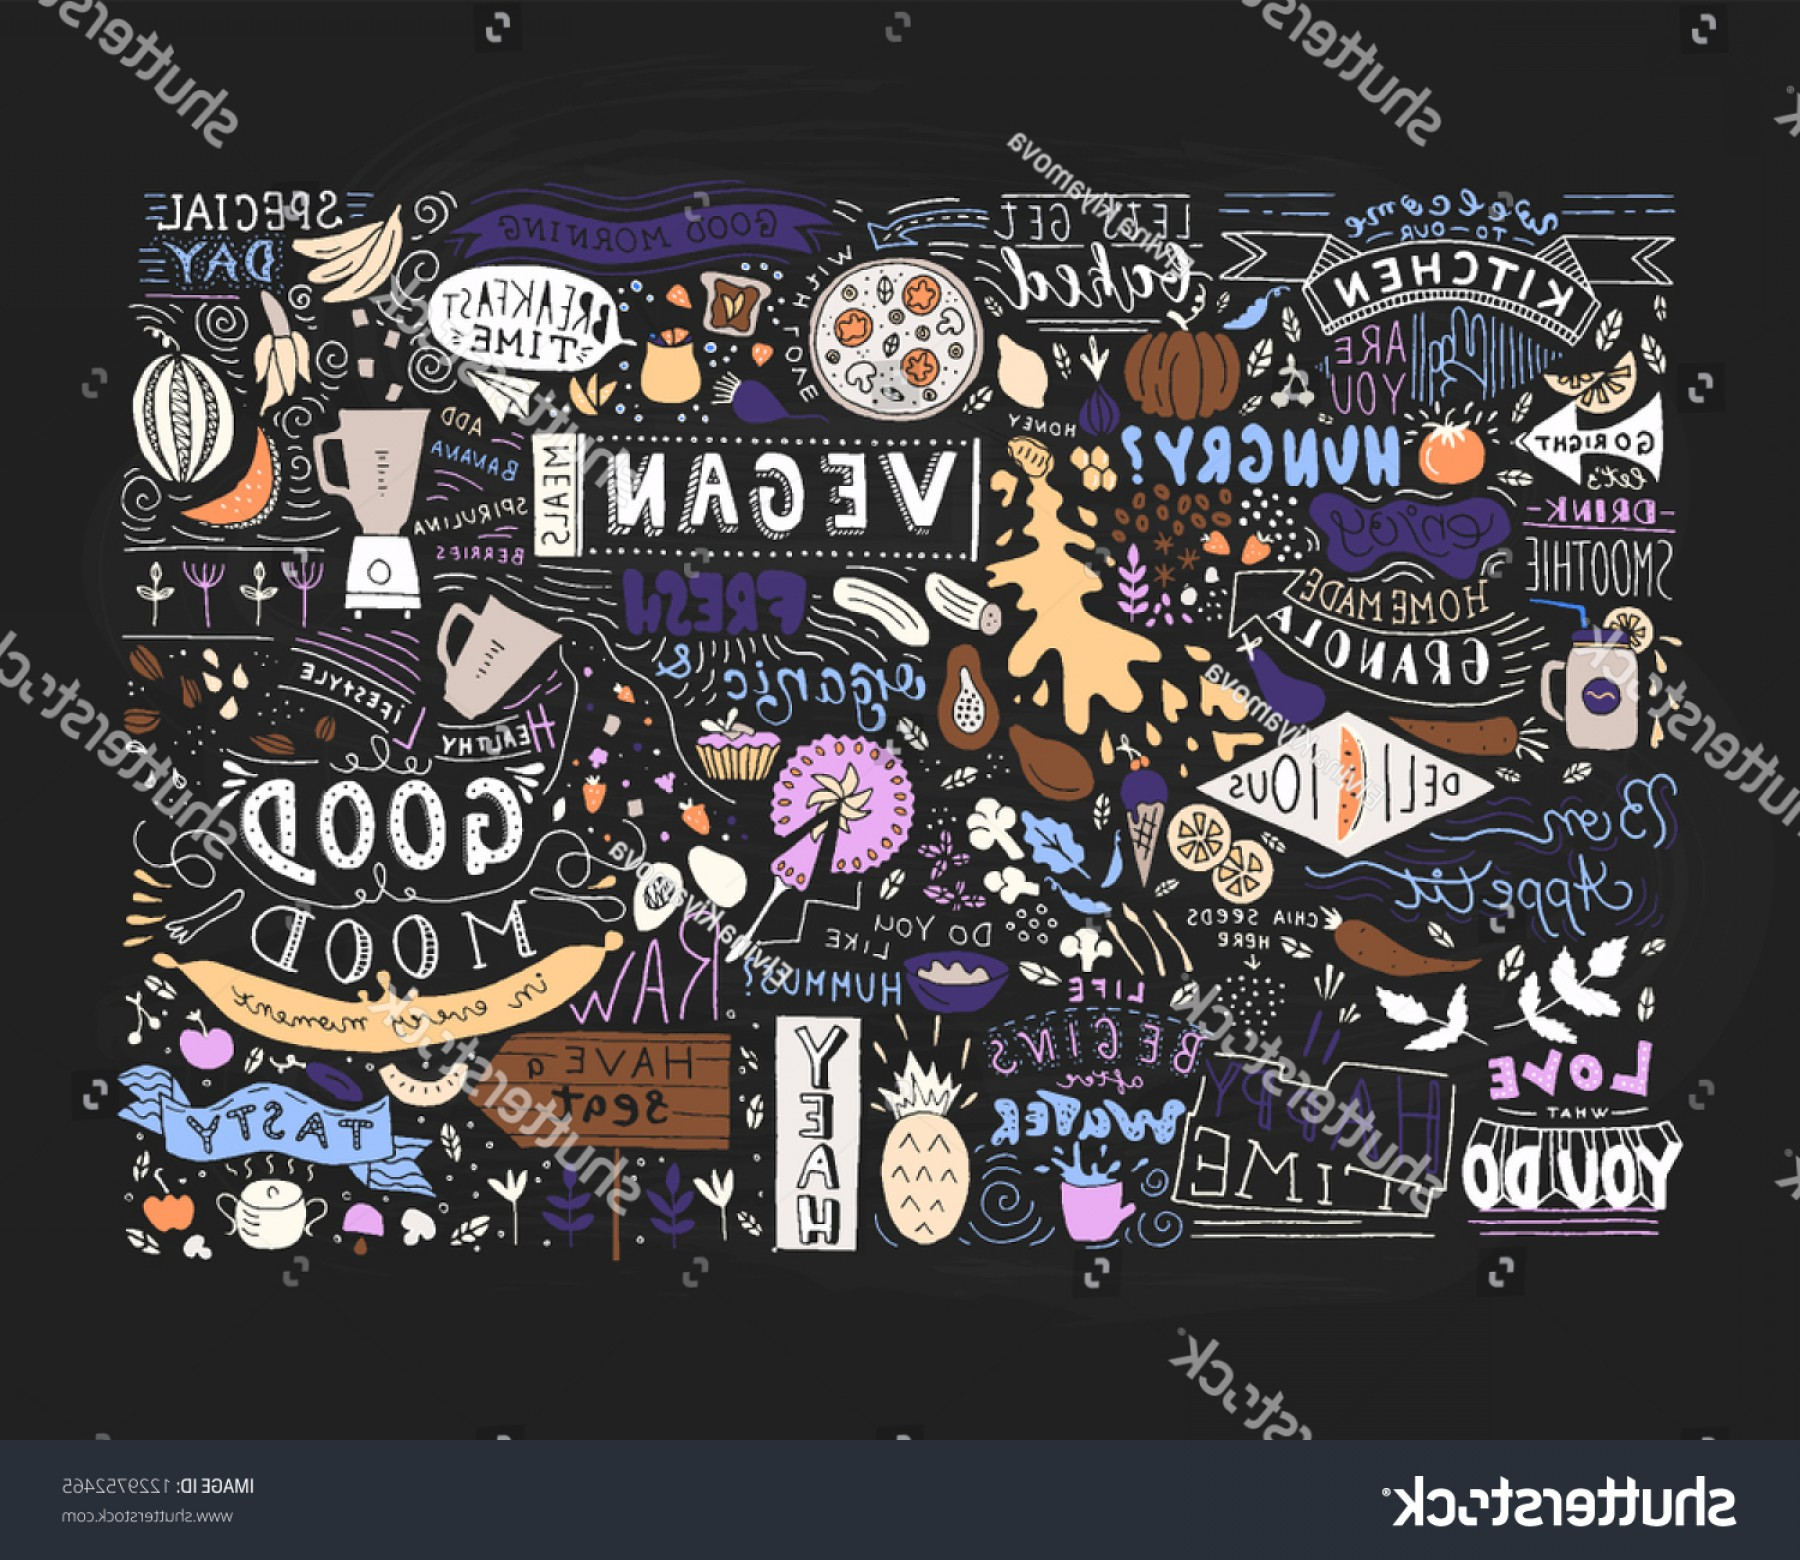 Wall Art Vector Graphics For The Home: Kitchen Wall Art Vegan Restaurant Cafe